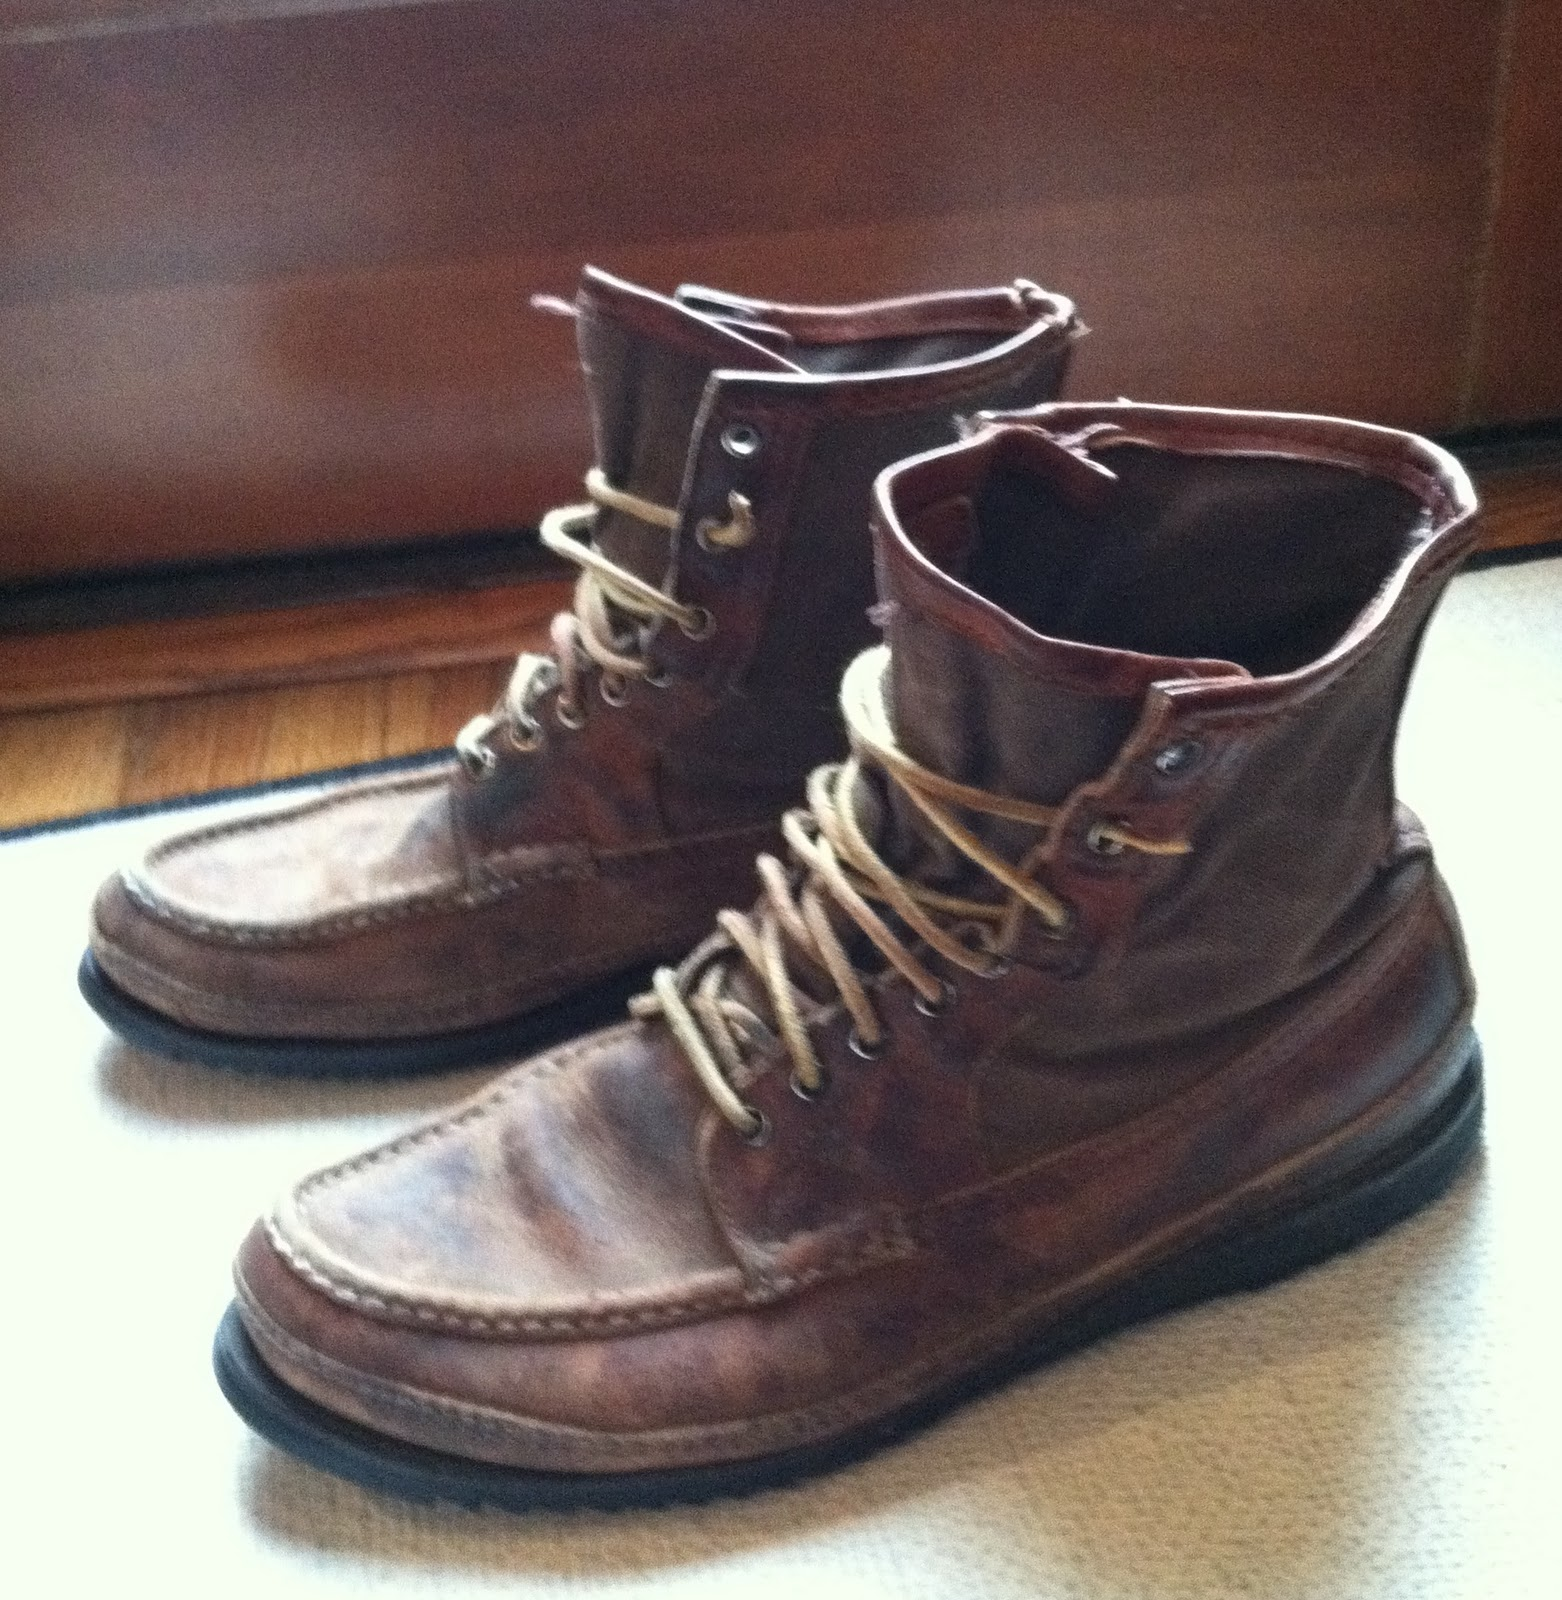 Midwest Dressed Badass Boots